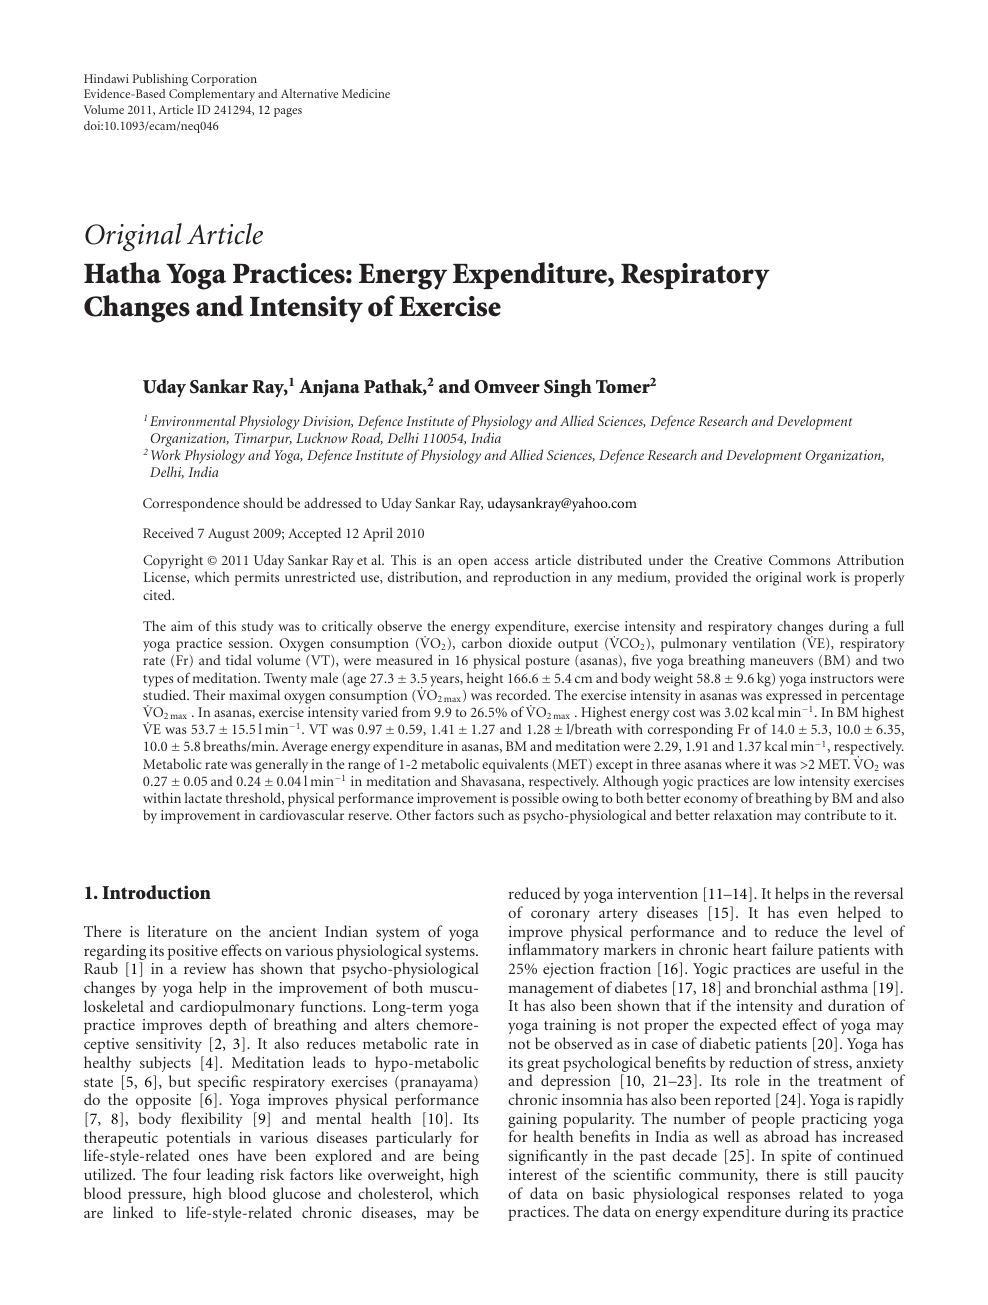 Hatha Yoga Practices Energy Expenditure Respiratory Changes And Intensity Of Exercise Topic Of Research Paper In Medical Engineering Download Scholarly Article Pdf And Read For Free On Cyberleninka Open Science Hub